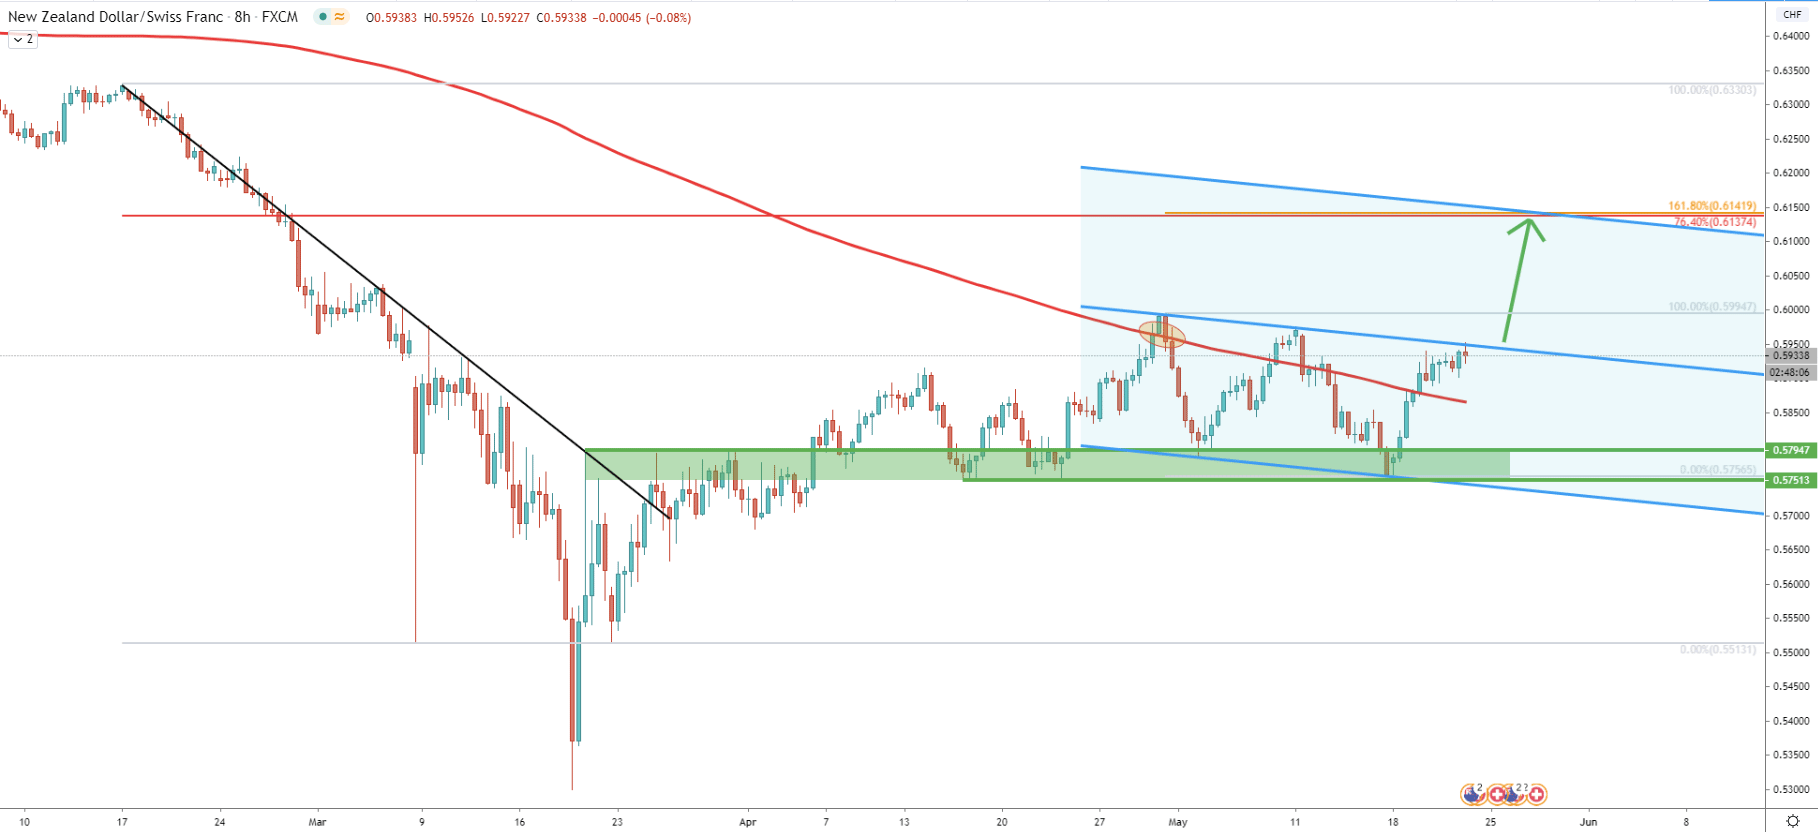 NZD/CHF 8-Hour Technical Analysis 21 May 2020